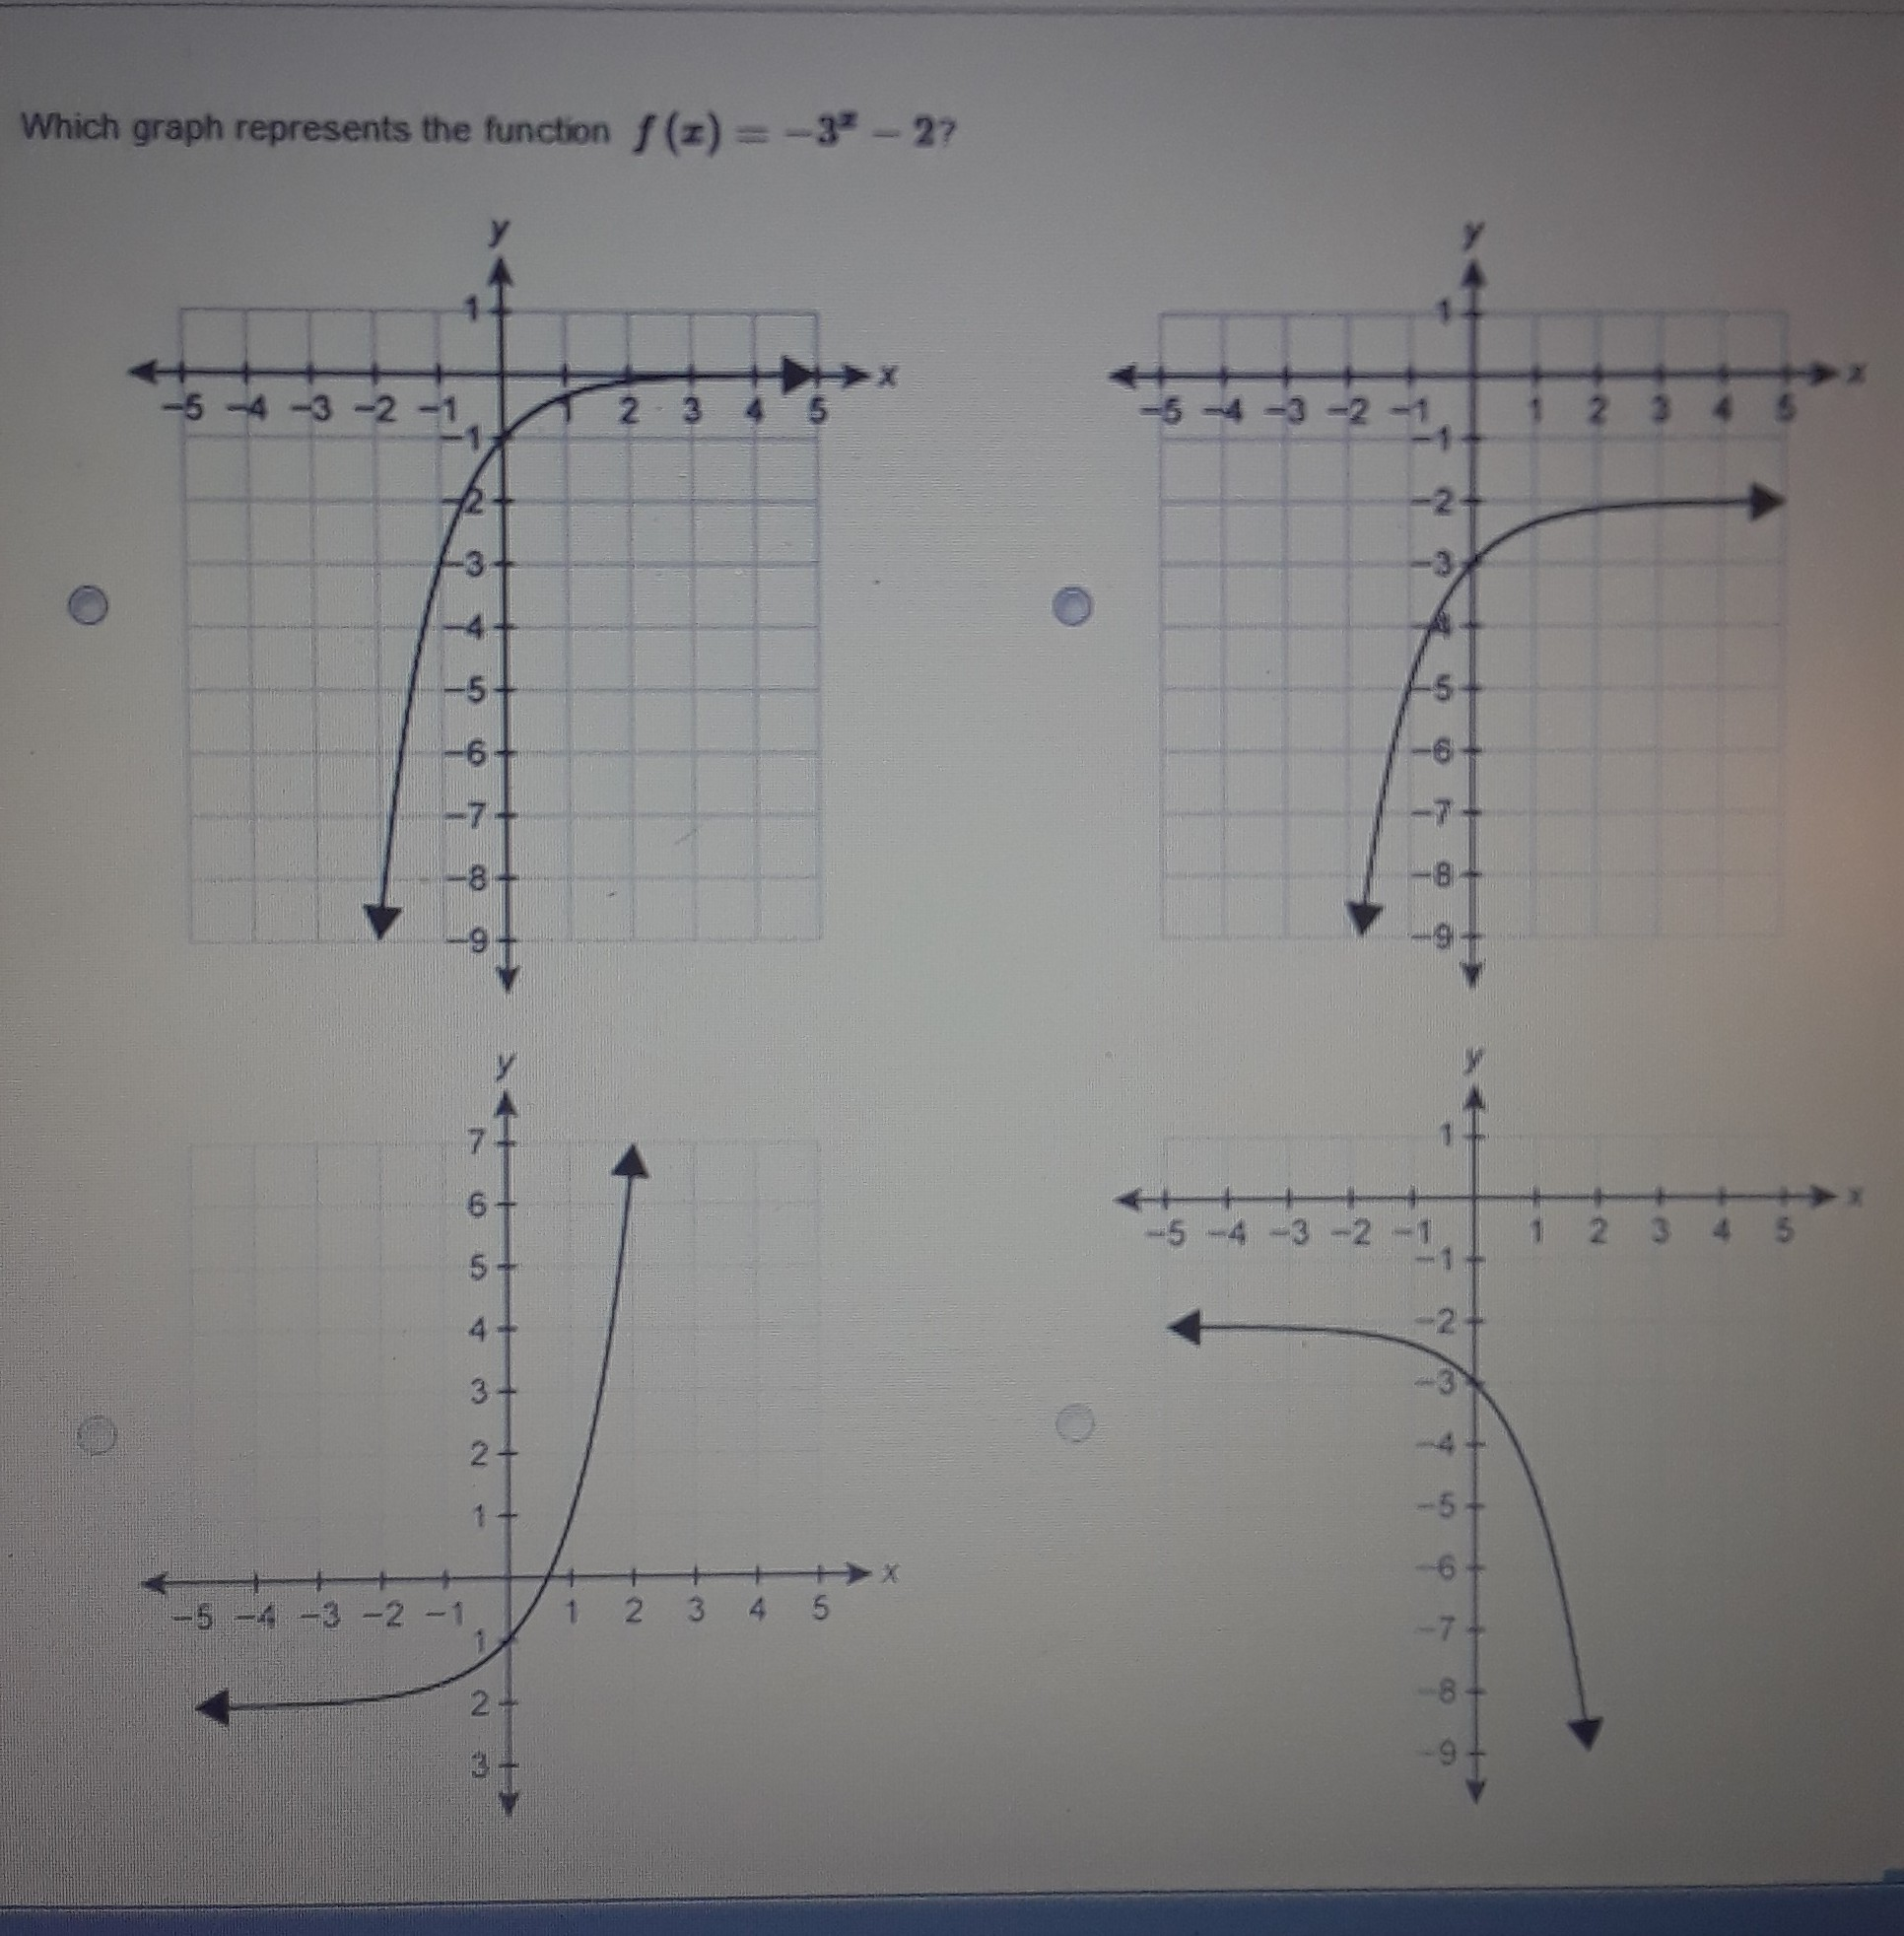 which graph represents the function f(x) = -3^x - 2?thank ...